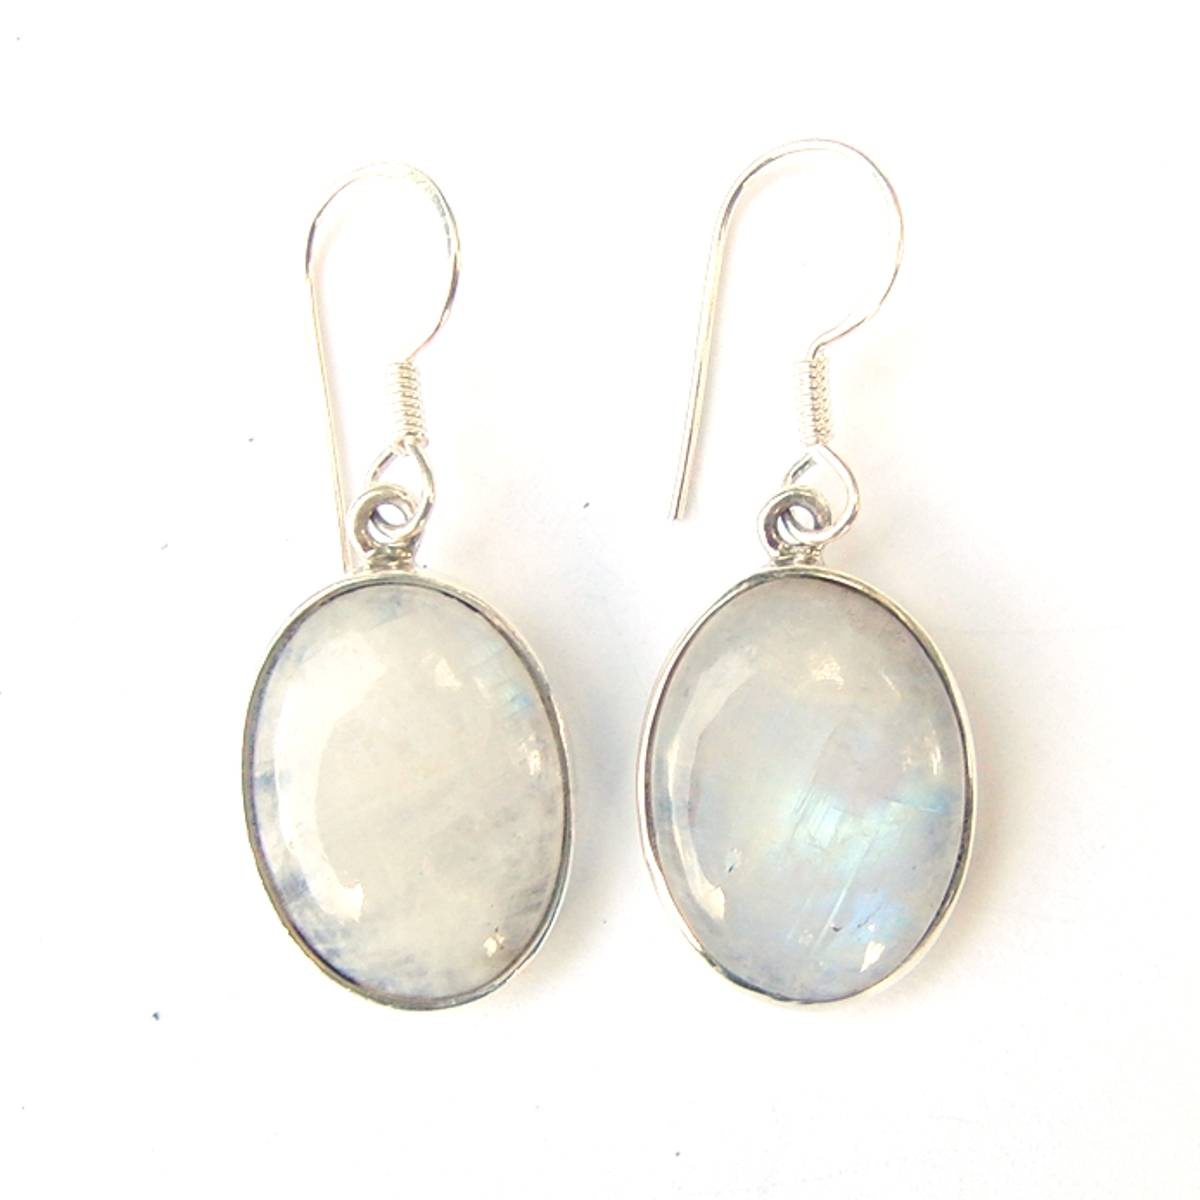 Moonstone Large Cab Earrings